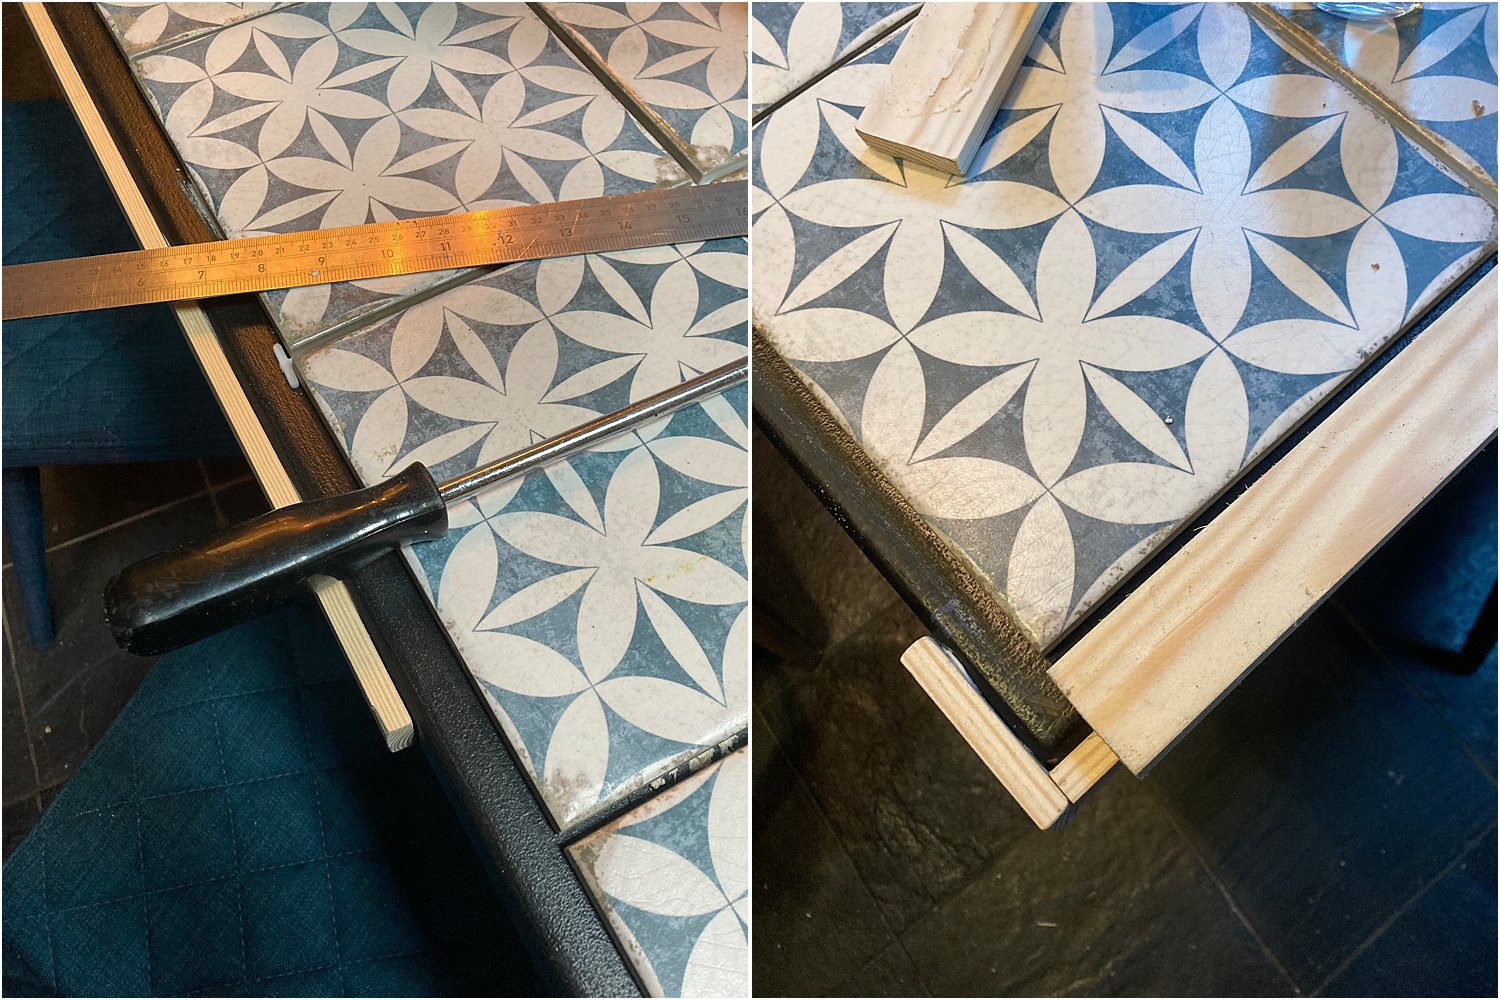 diy-how-to-tiled-dining-table-tutorial-layered.home